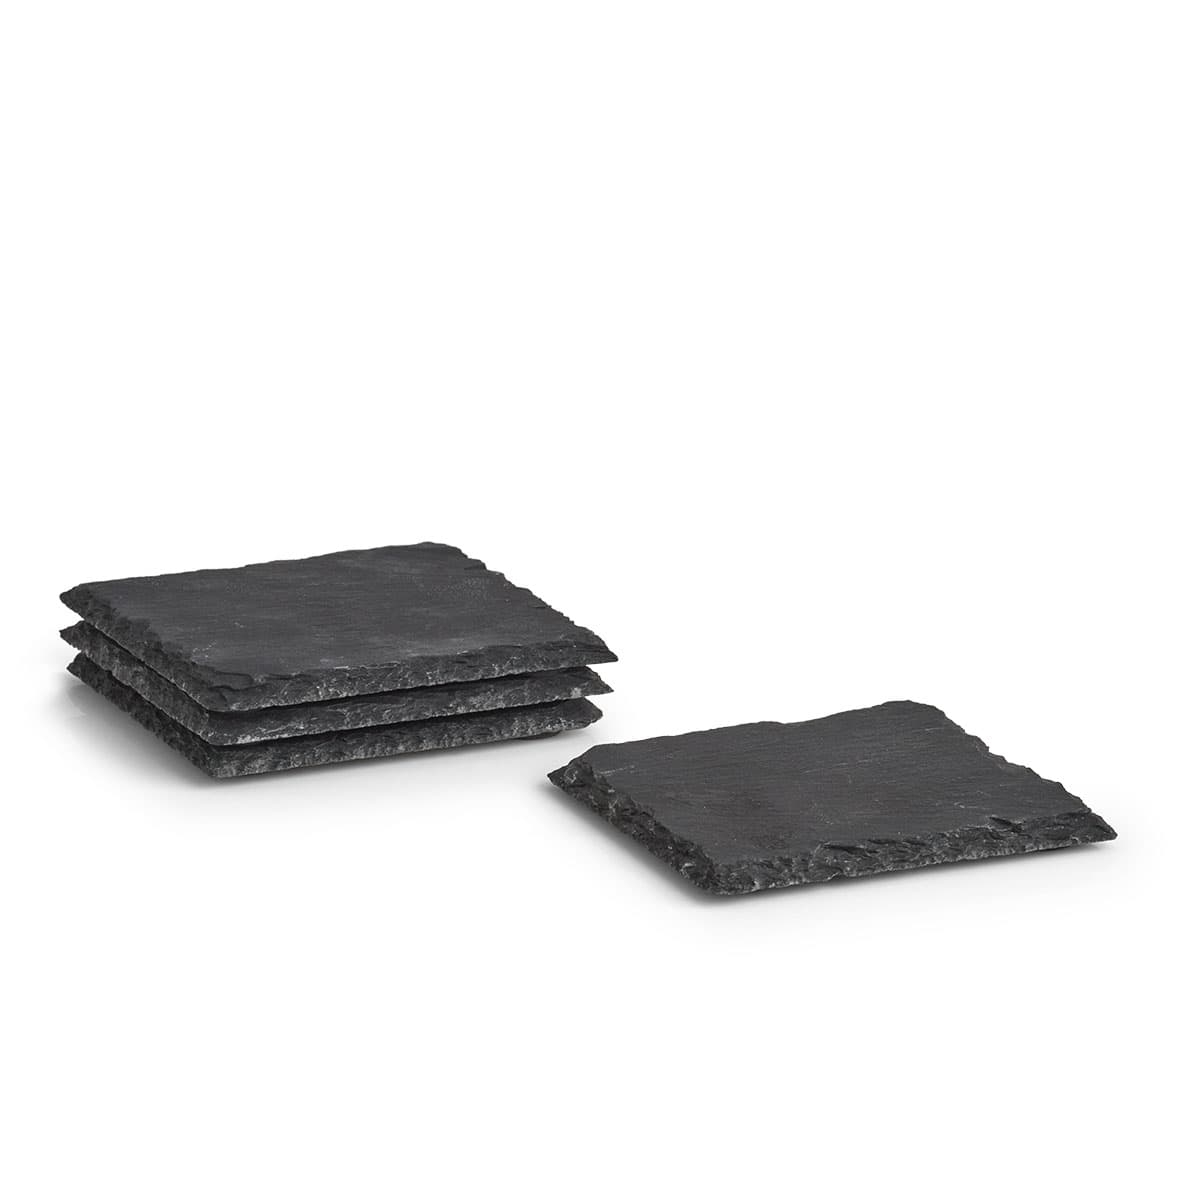 Set coastere, Slate Grafit, 4 piese, L10xl10 cm imagine